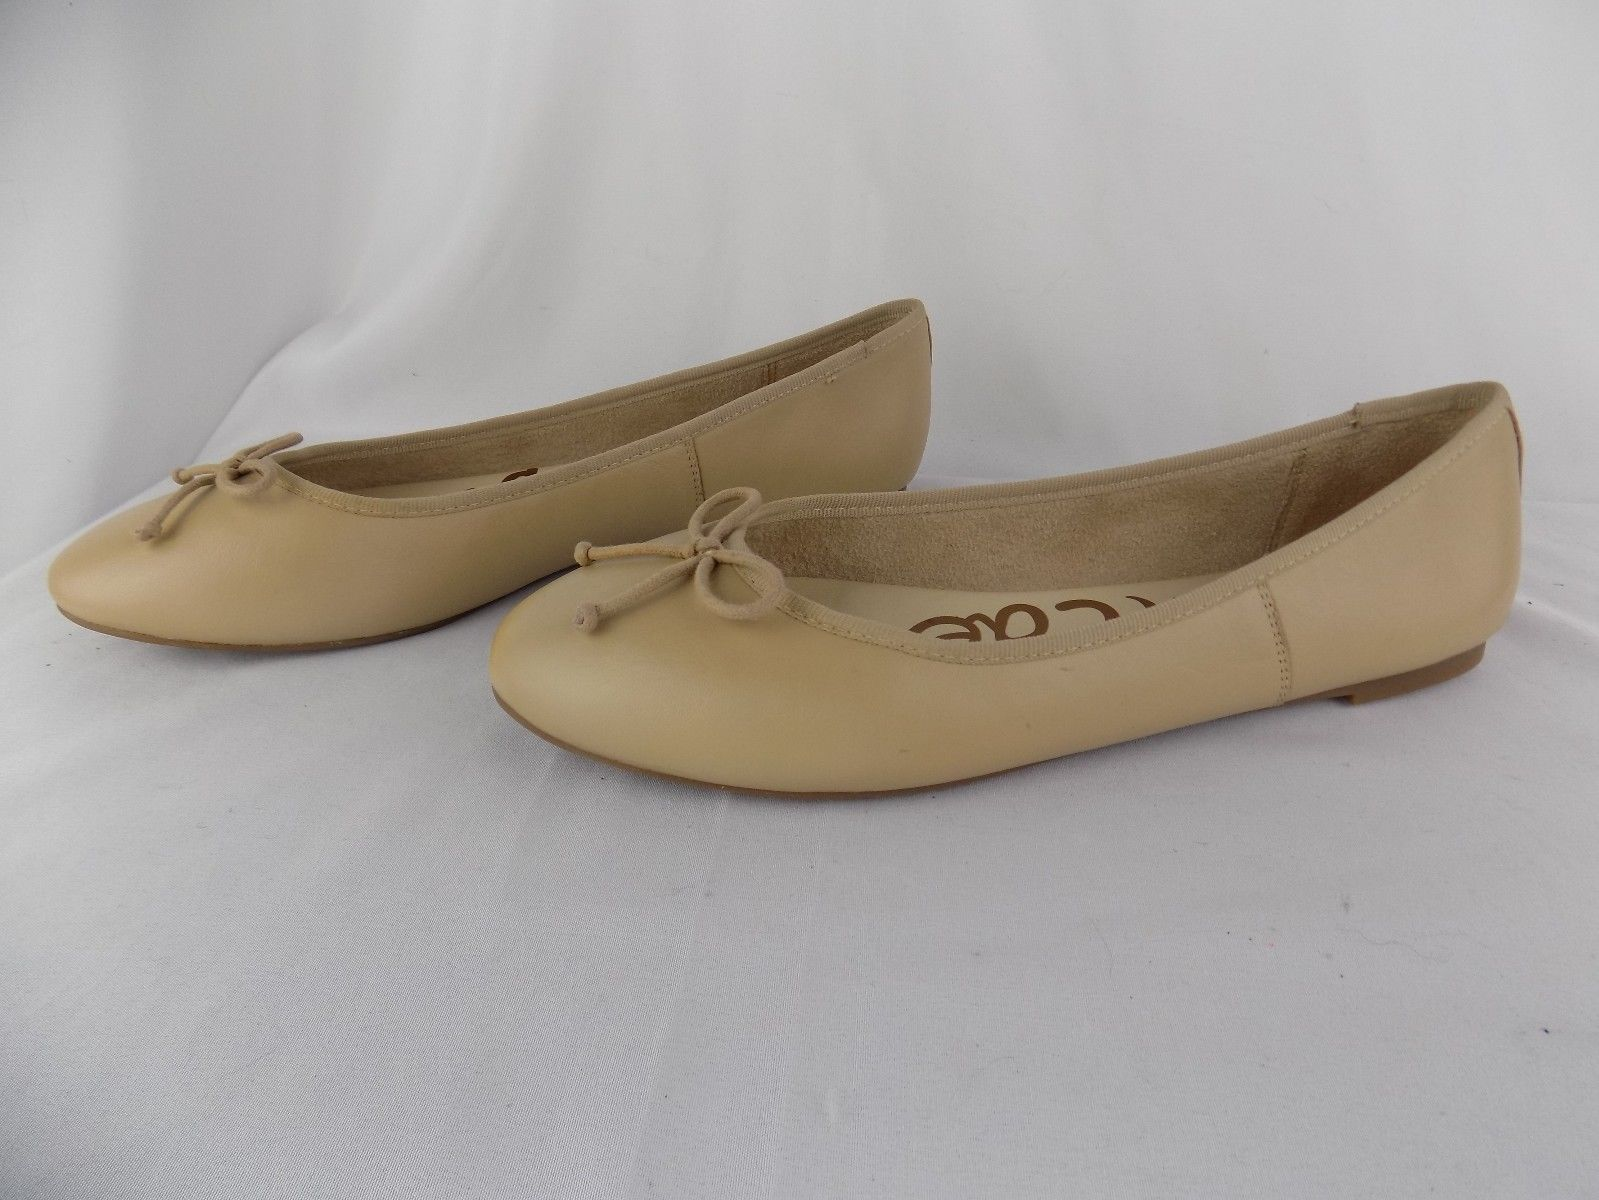 b42b7f4f2acb 80.00 USD ❤ New Sam Edelman Women s Carrie Ballet Flat Slip On Shoes Nude  Sz 10